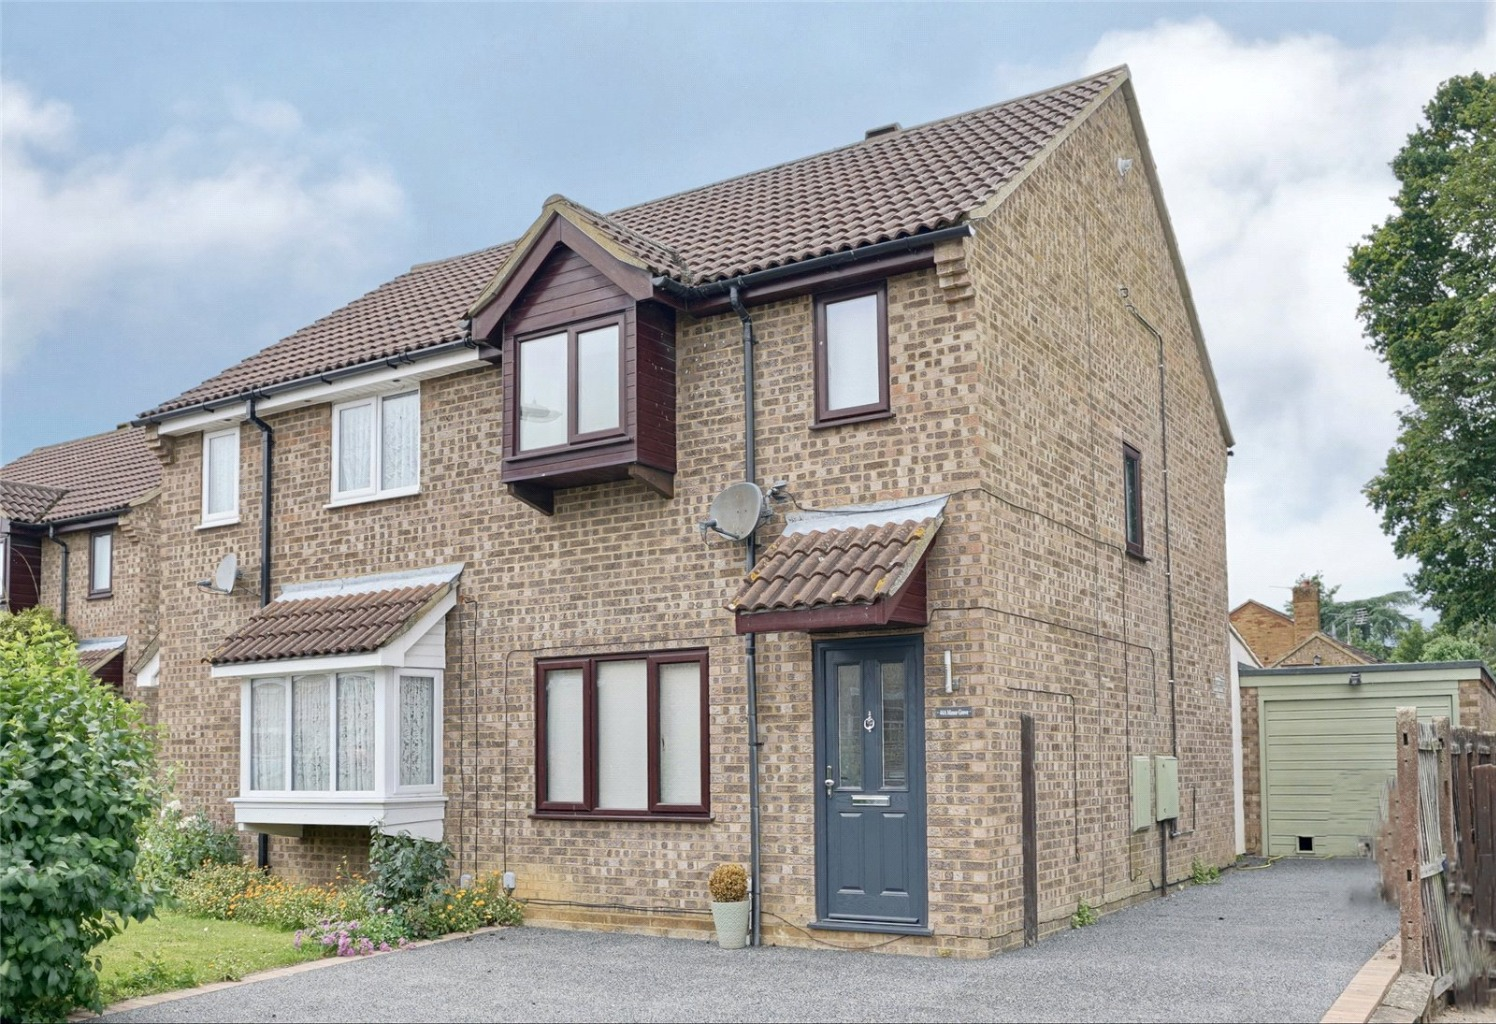 3 bed  for sale in Manor Grove, St. Neots, PE19